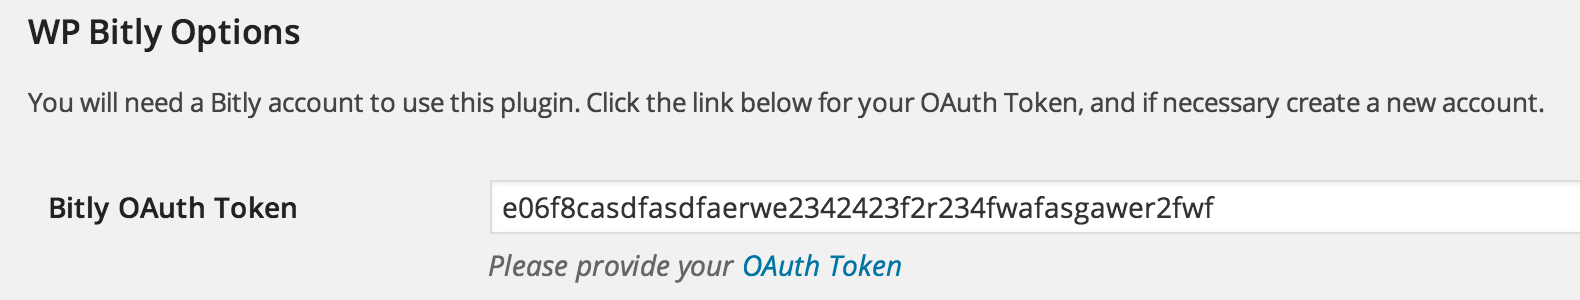 WP Bitly OAuth Token